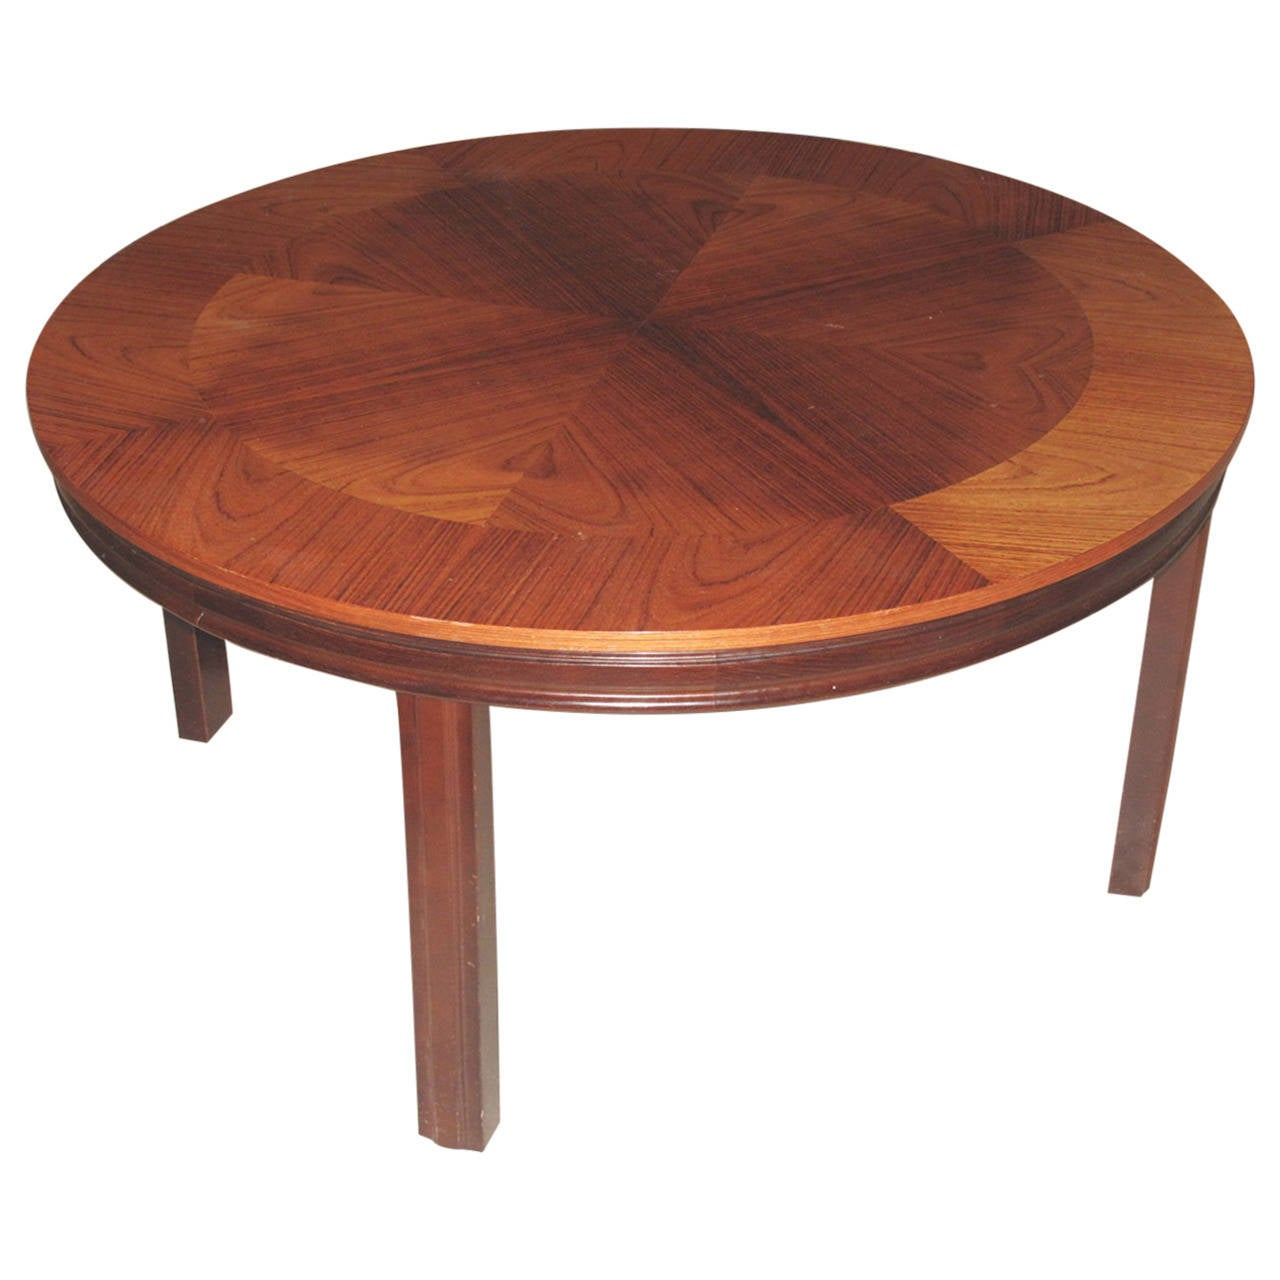 Danish Mahogany Circular Coffee Or Low Table With Patterned Top For Sale At 1stdibs